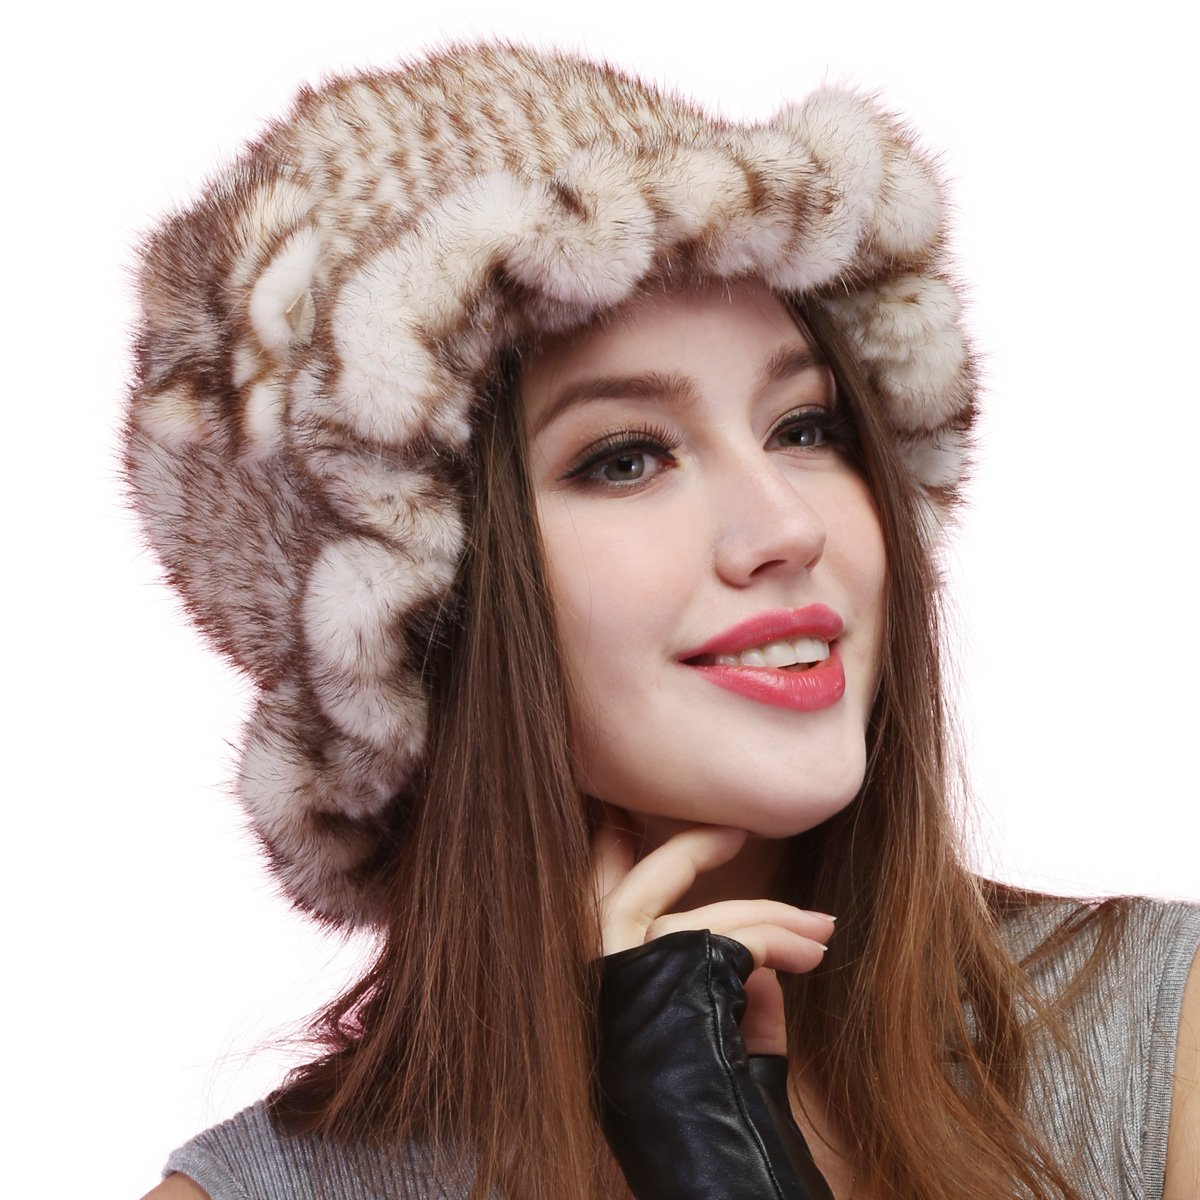 Mandy's Women's Winter Genuine Mink Flower Fur Caps New Snow Show Hats Multicolor (one size fit most, Tan)